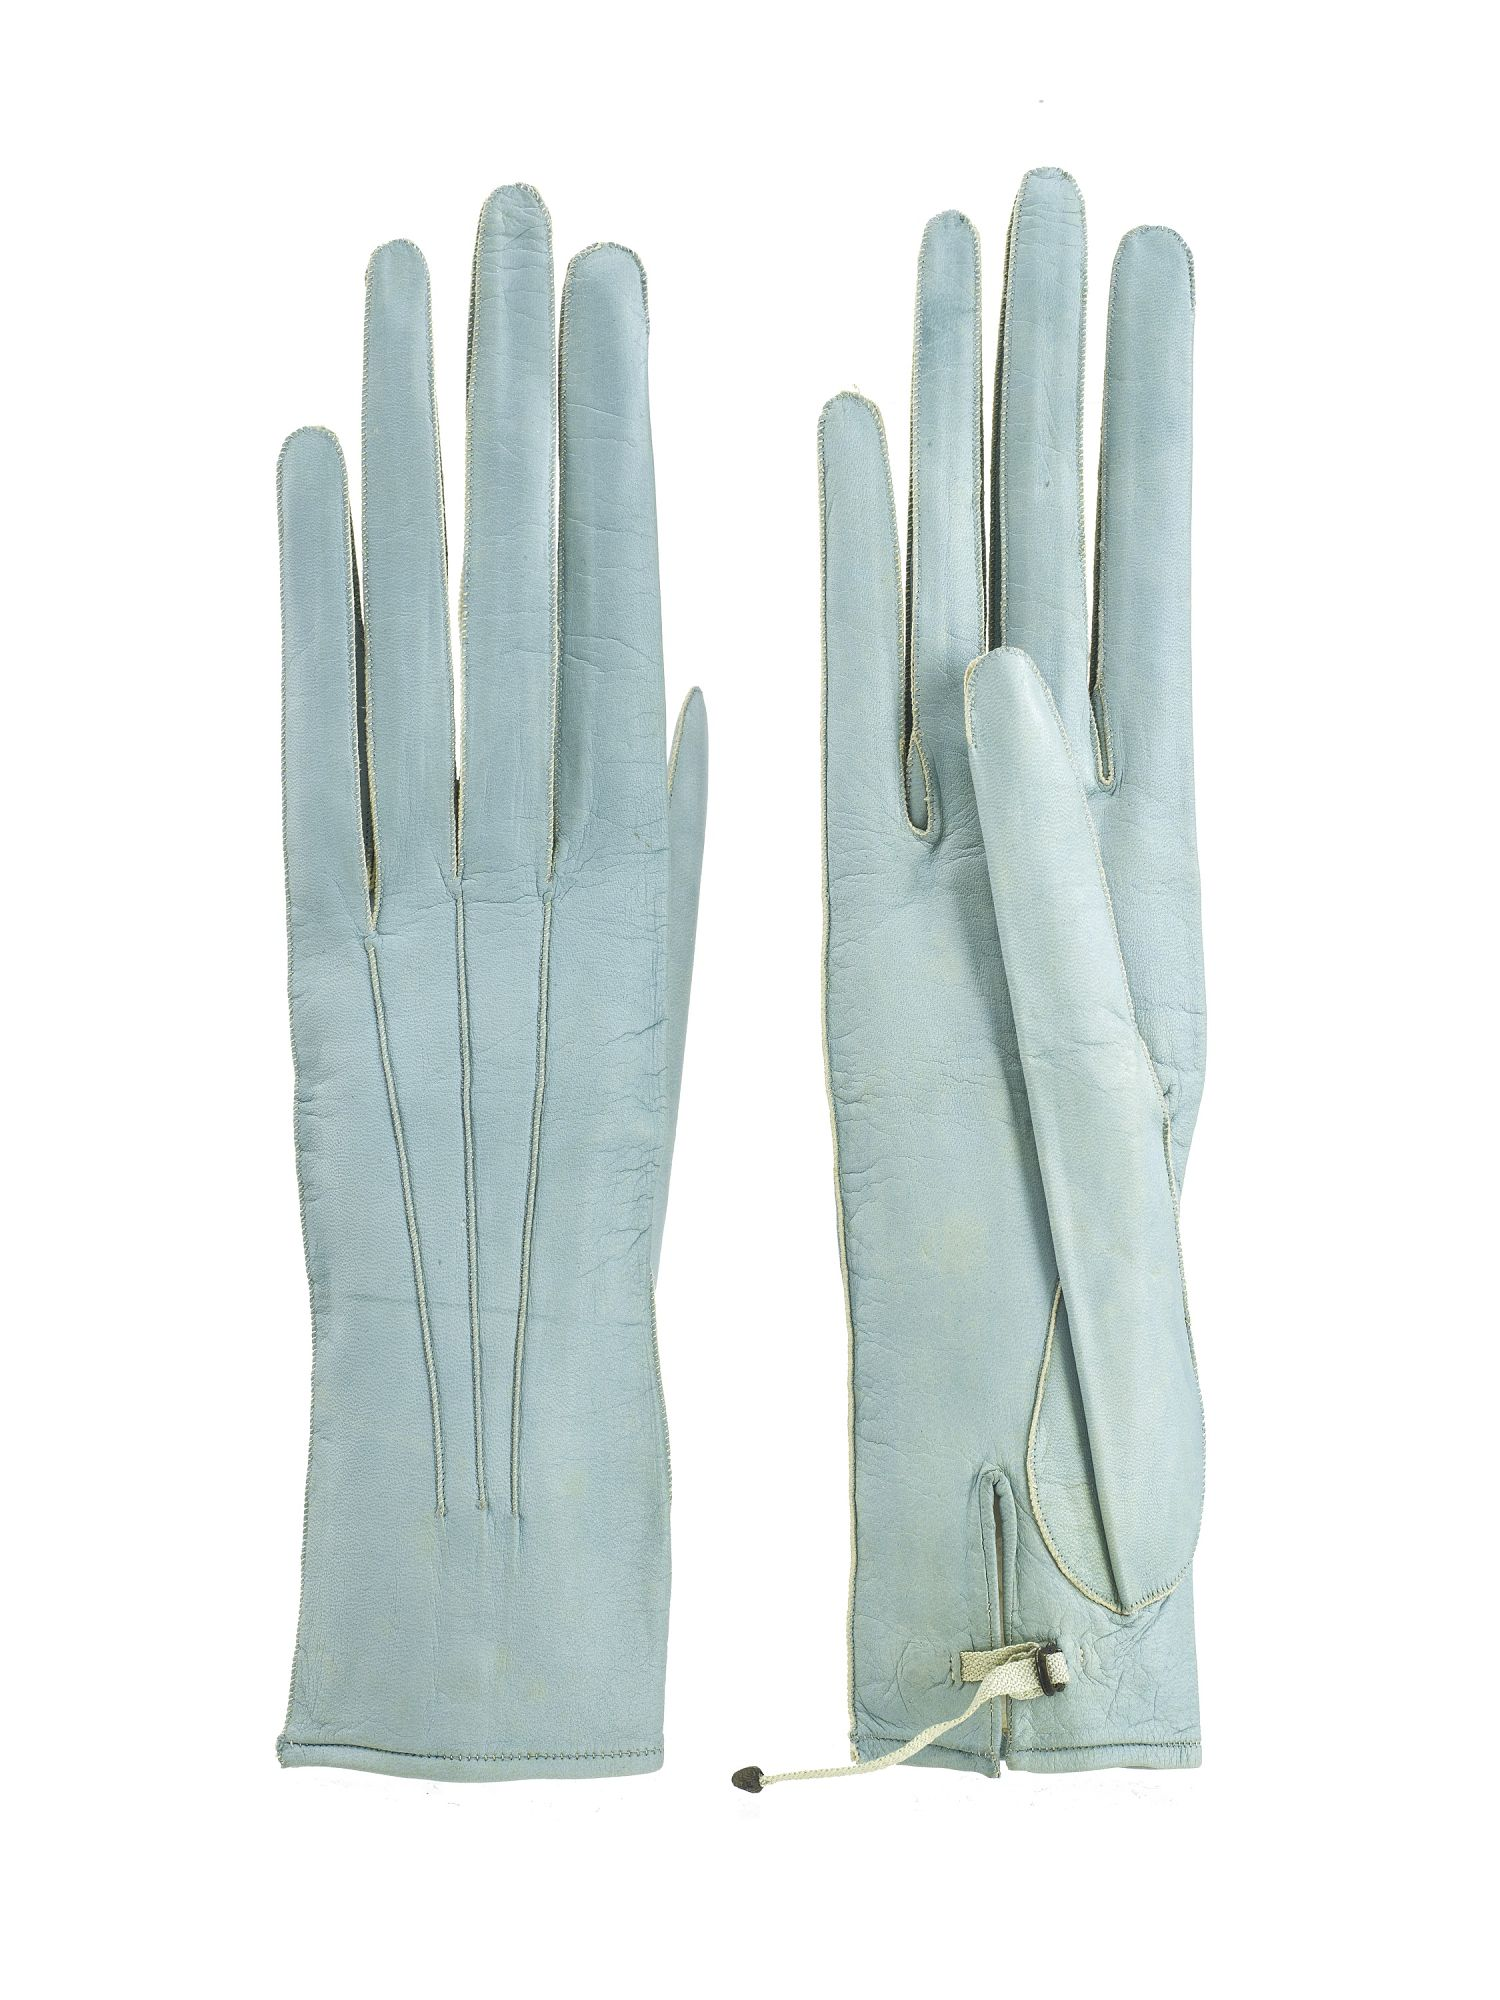 Womens leather gloves teal - This Is A Pair Of Early 1800s Women S Blue Leather Gloves Gloves Were An